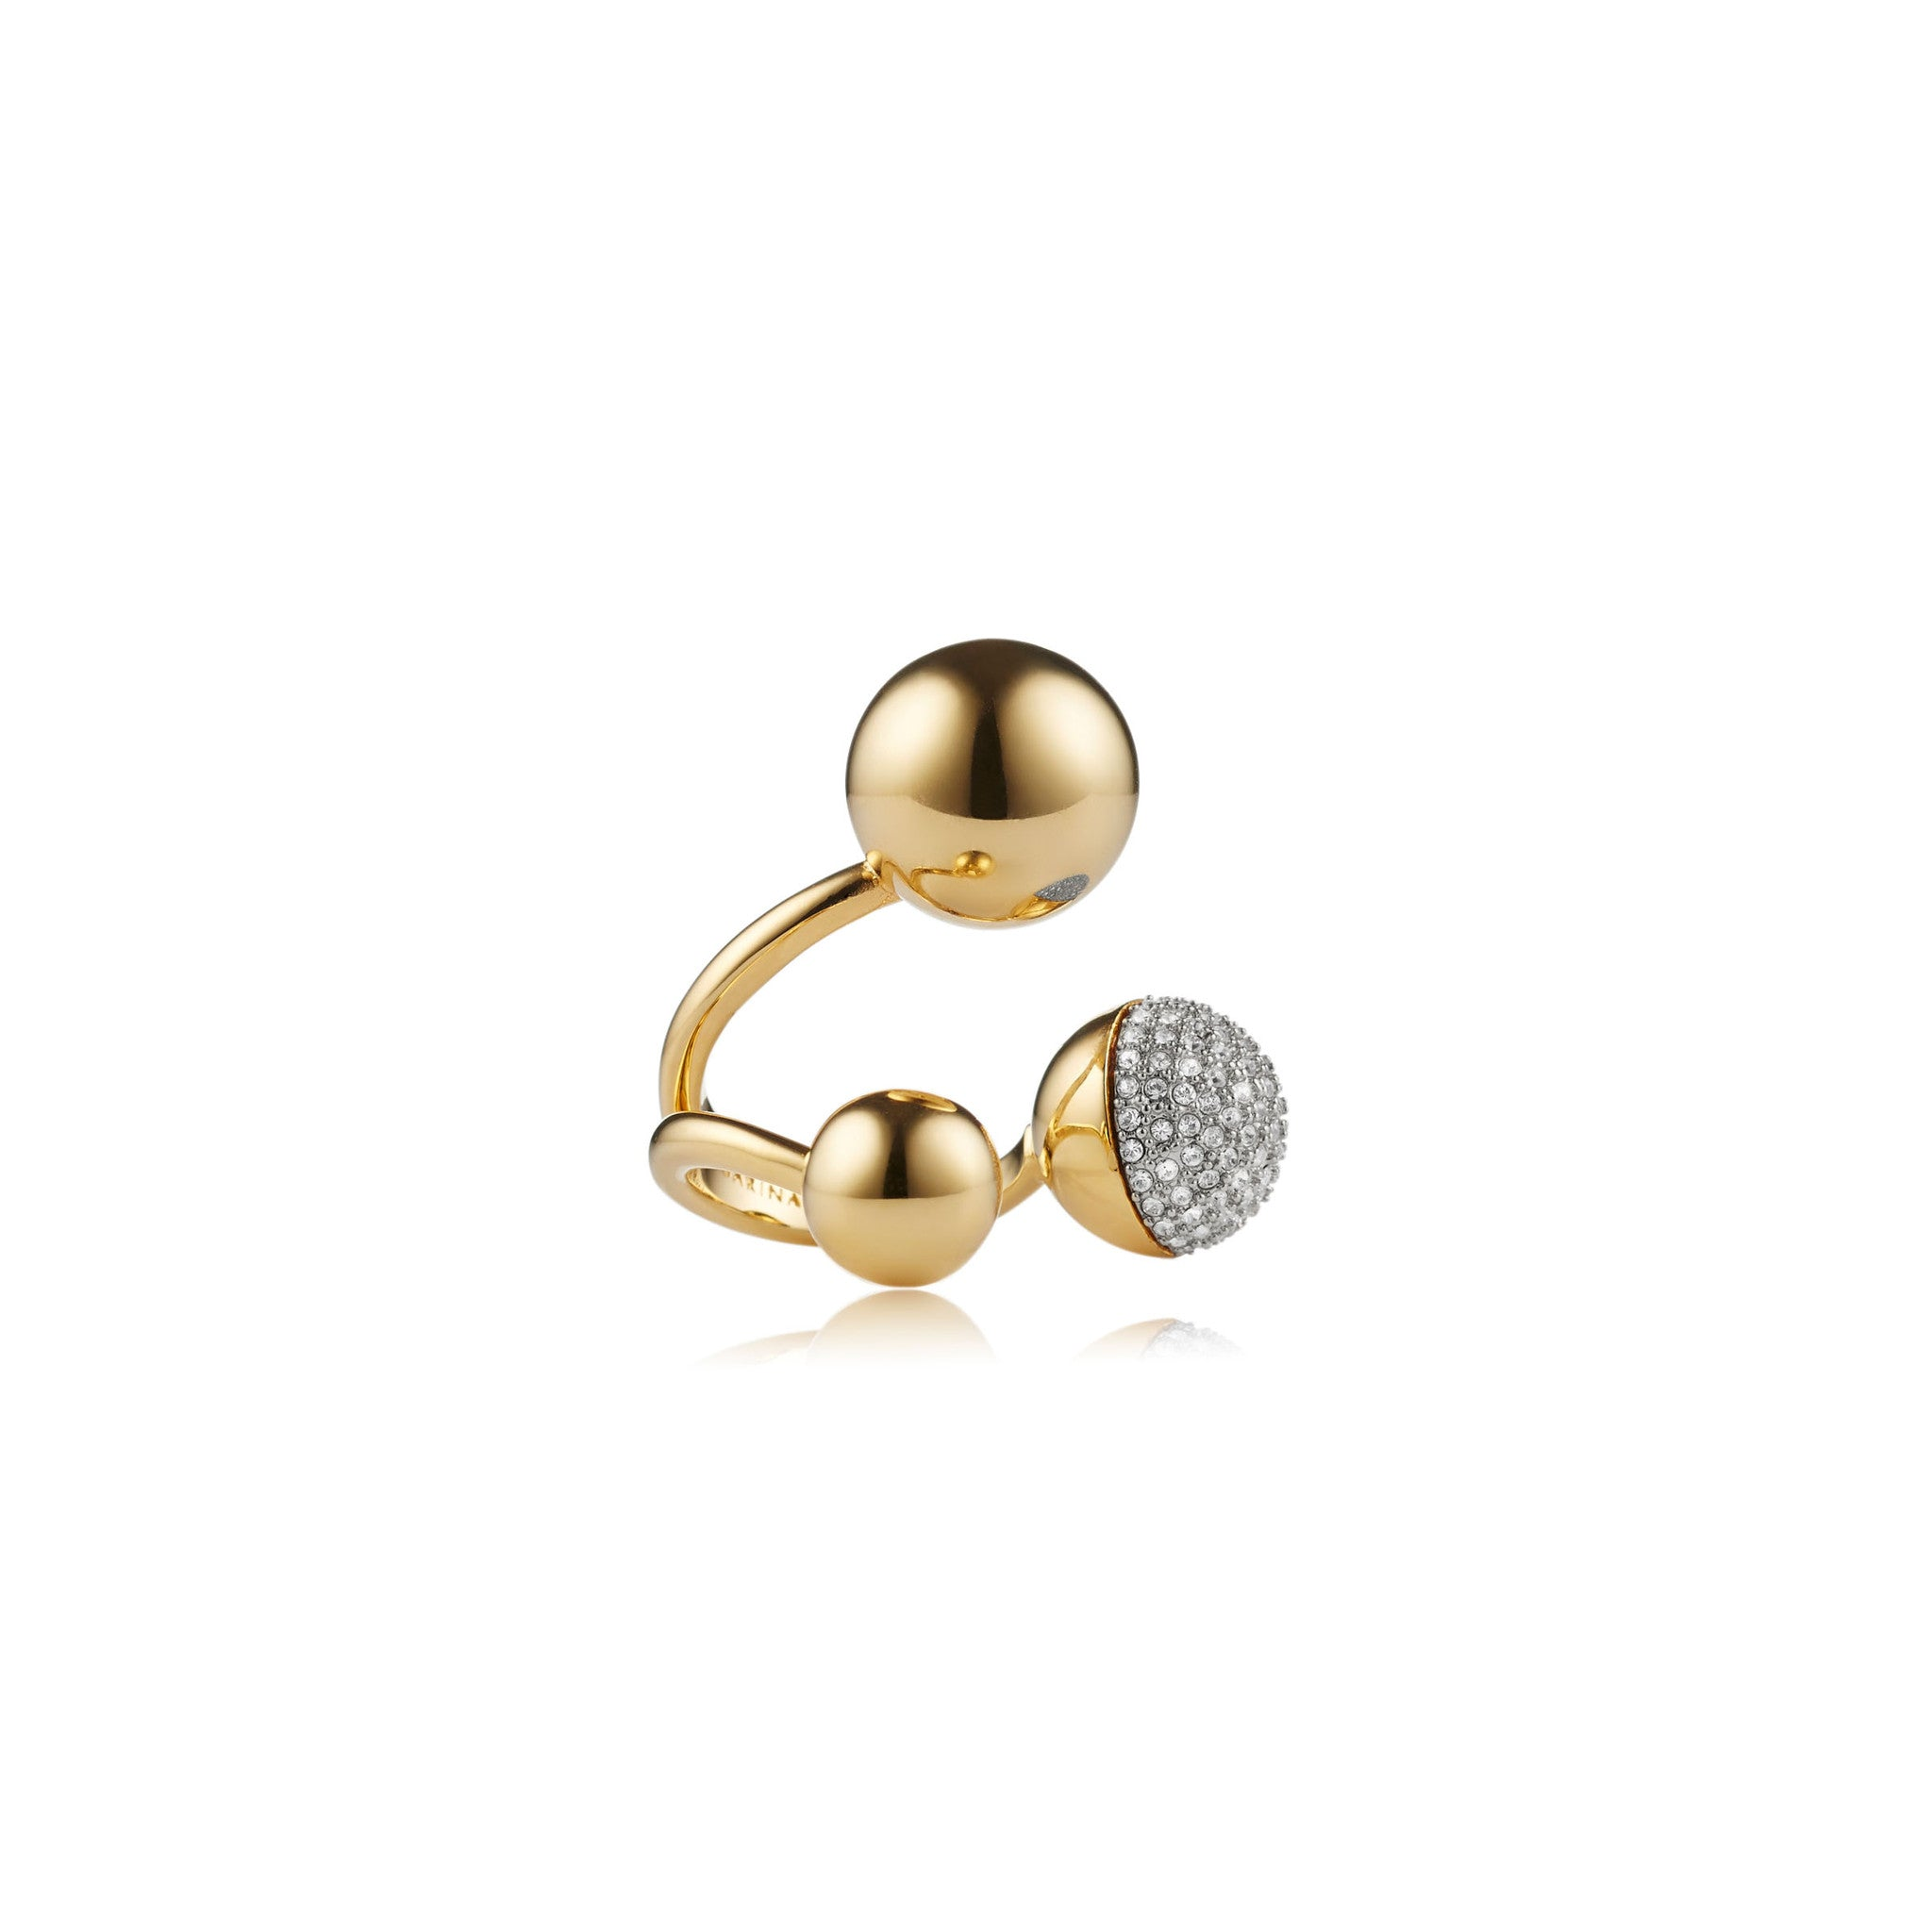 Solid brass, 18K gold plated Celestine ring with Swarovski® crystal pavè detailing - front